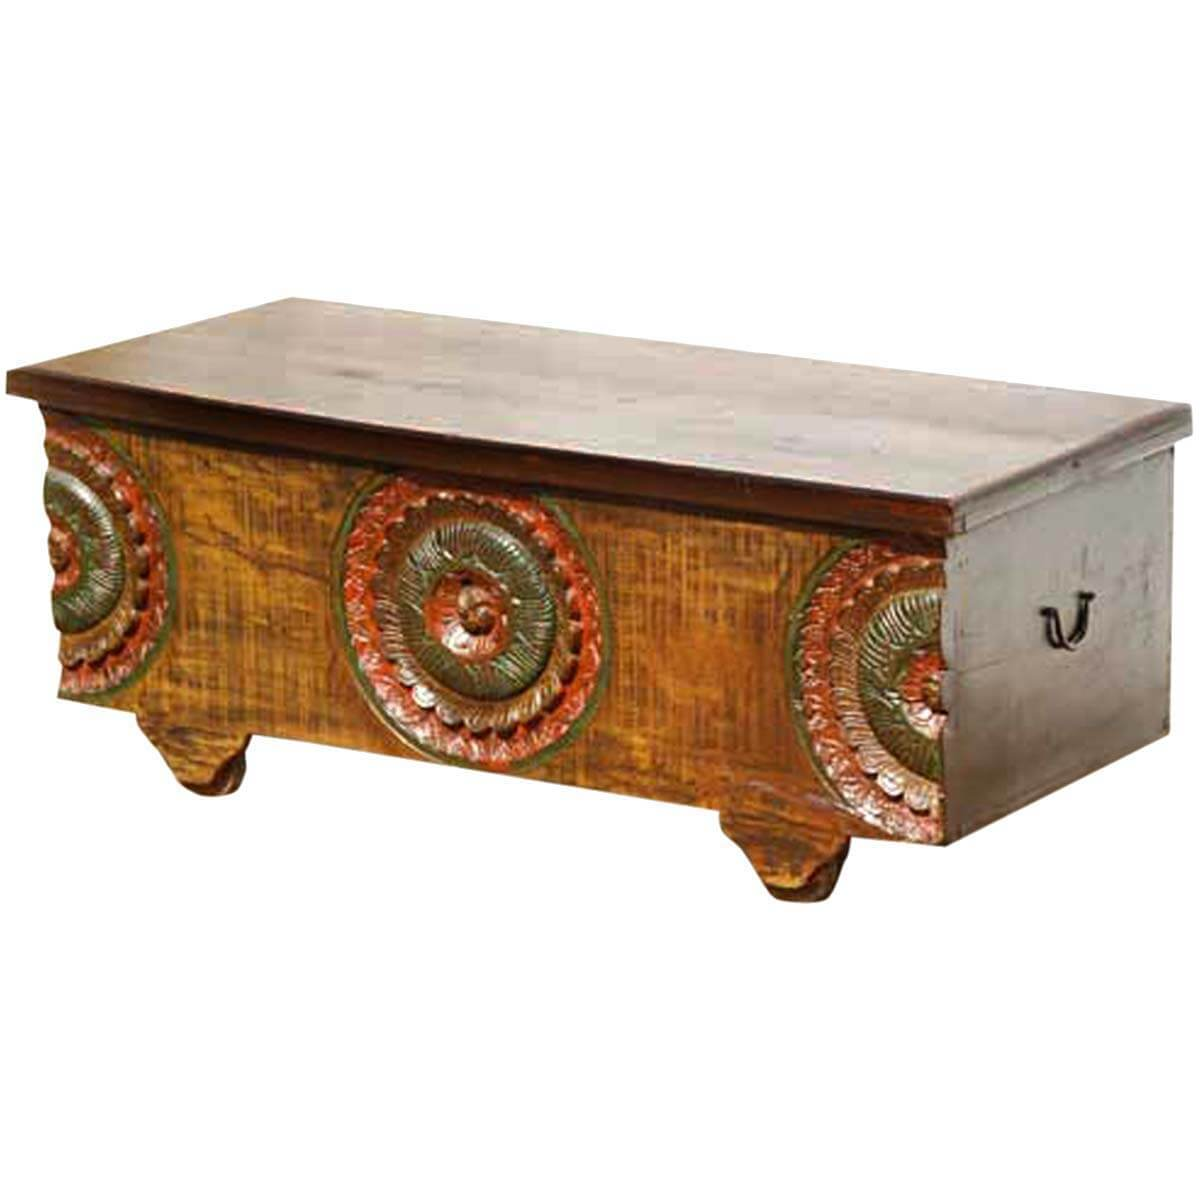 Antique Trunks As Coffee Tables: Antique Style Carved Wood Storage Trunk Coffee Table